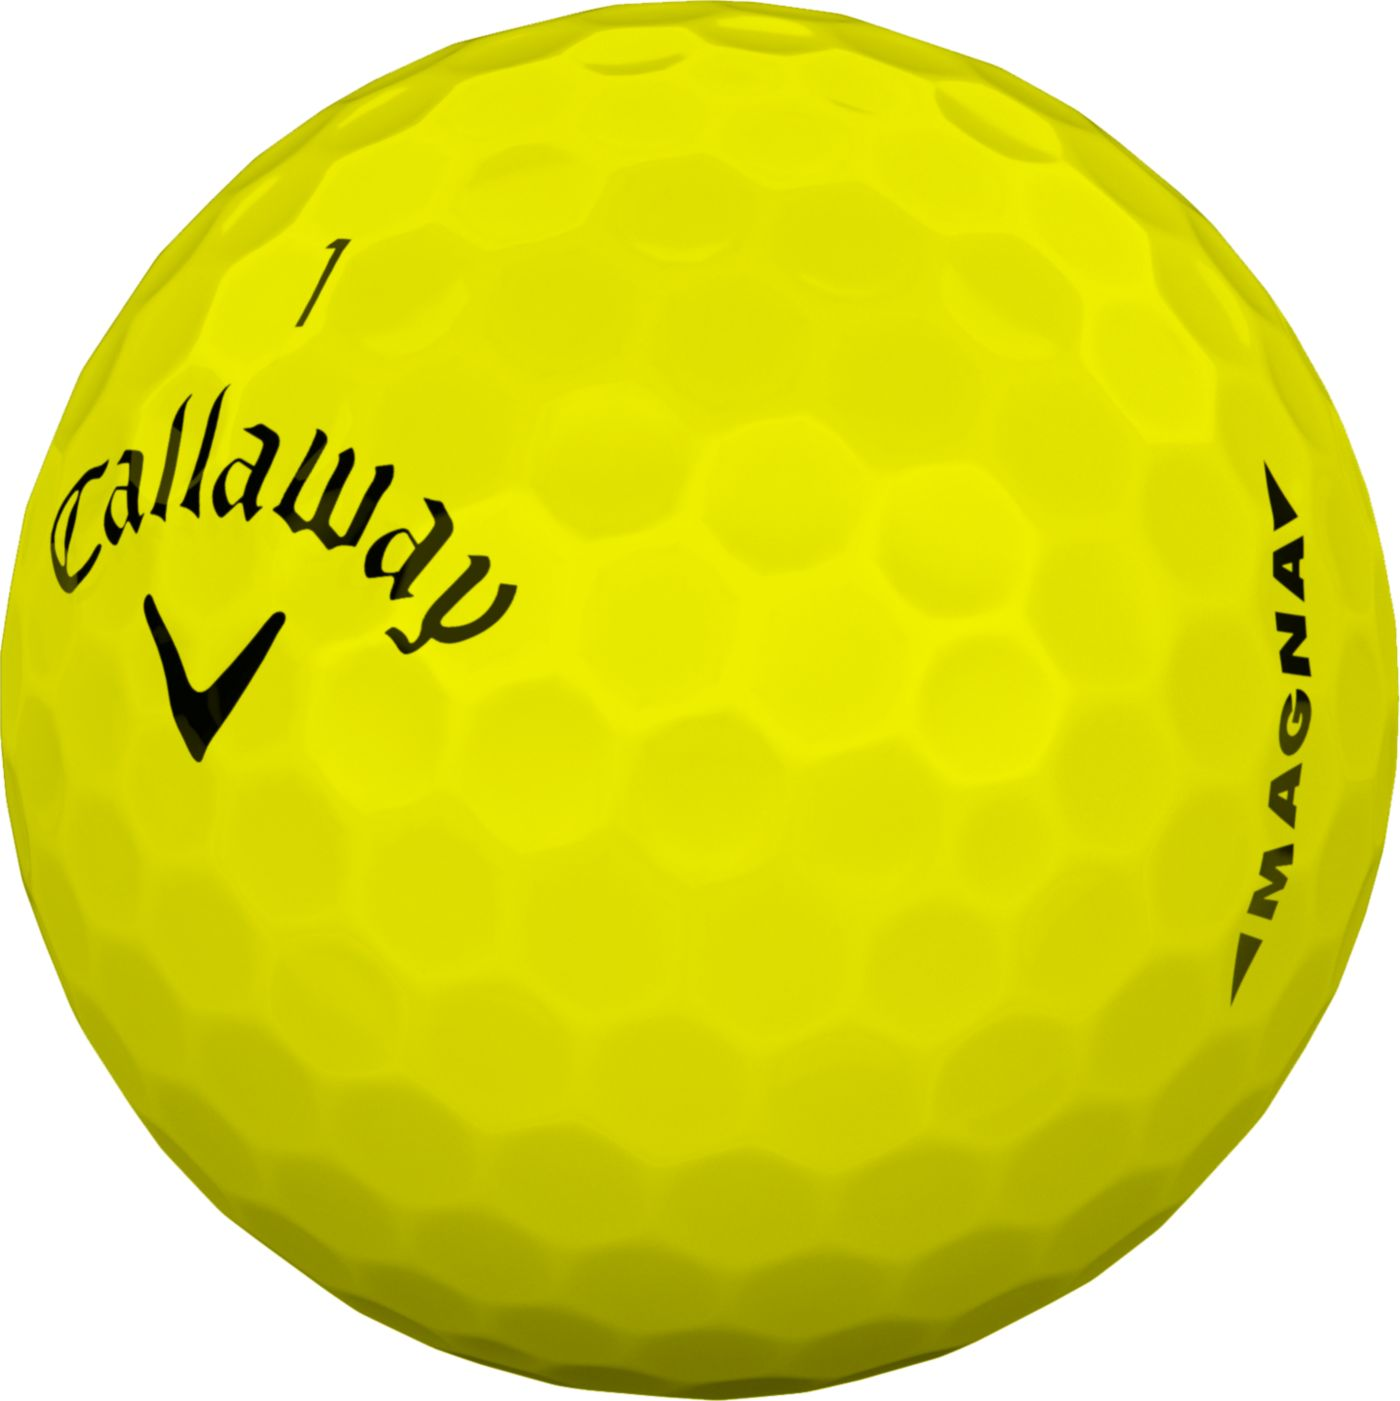 Callaway 2019 Supersoft Magna Yellow Golf Balls